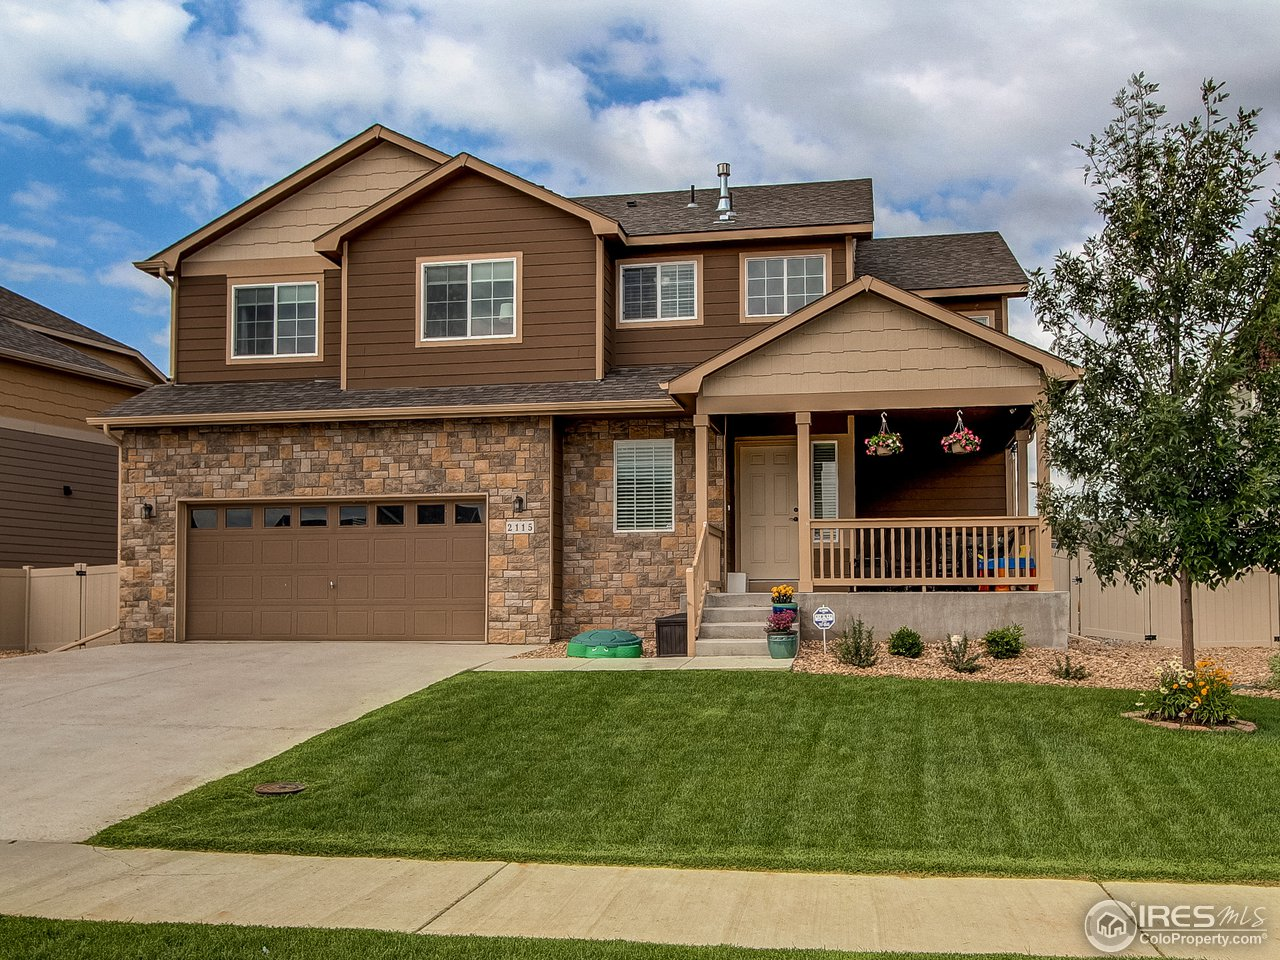 This beautiful home in Greeley is like new.  This 3 bed 3 bath home features a large open floor plan, wood floors, granite counter tops, upstairs laundry room,3 car tandem garage, Huge awesome backyard, large master walk-in closet and an unfinished basement are just some of what this house has to offer! Windsor Schools.